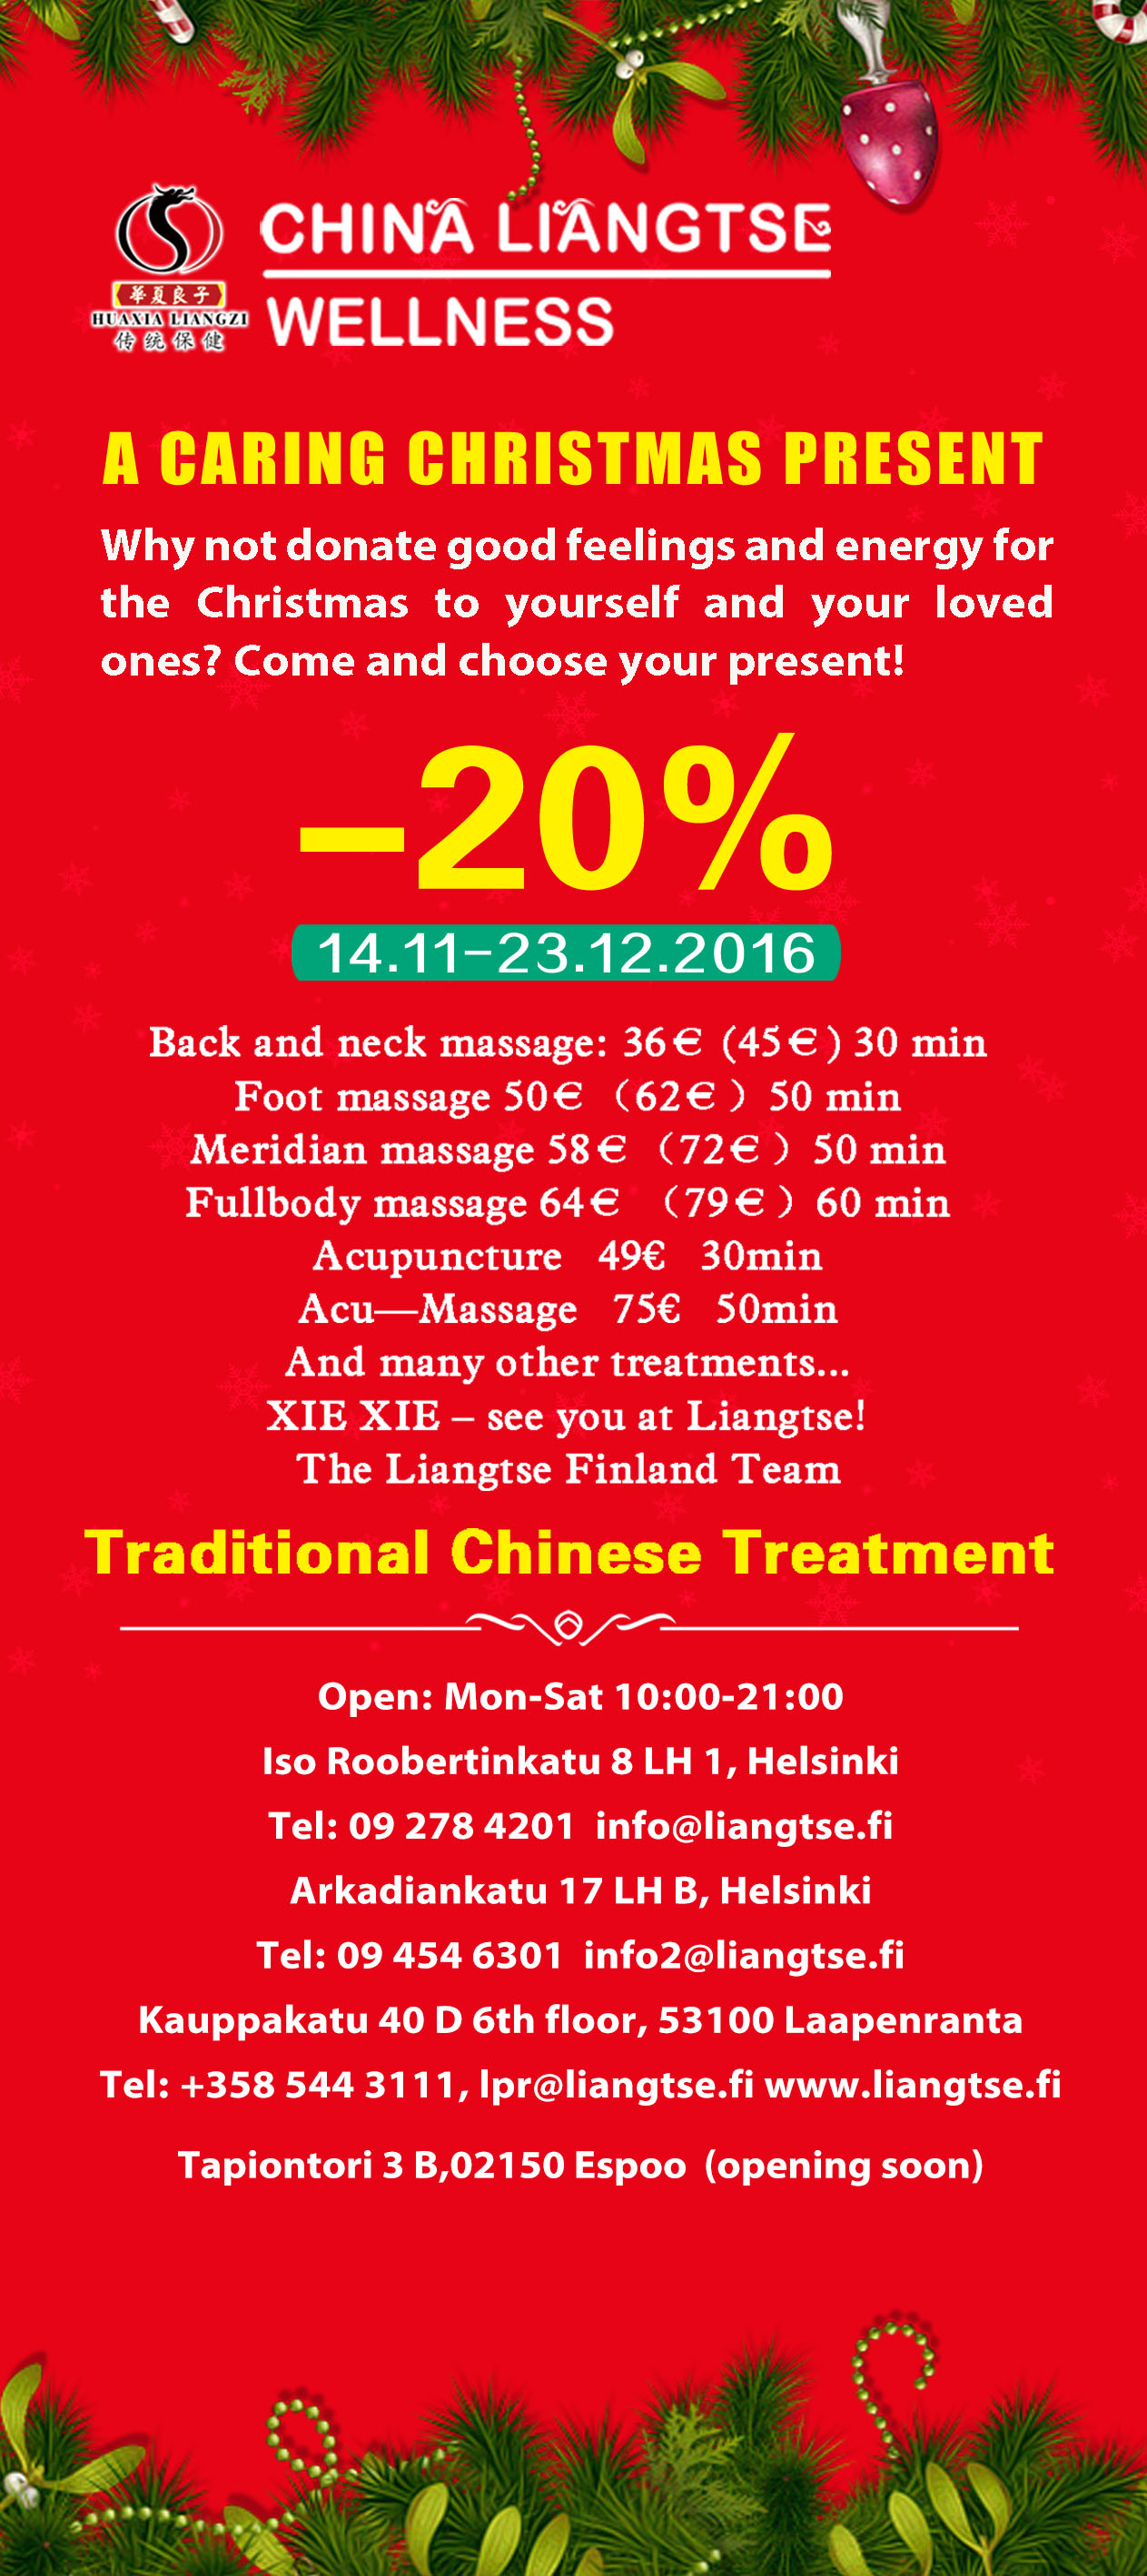 Liangtse Christmas offer 2016